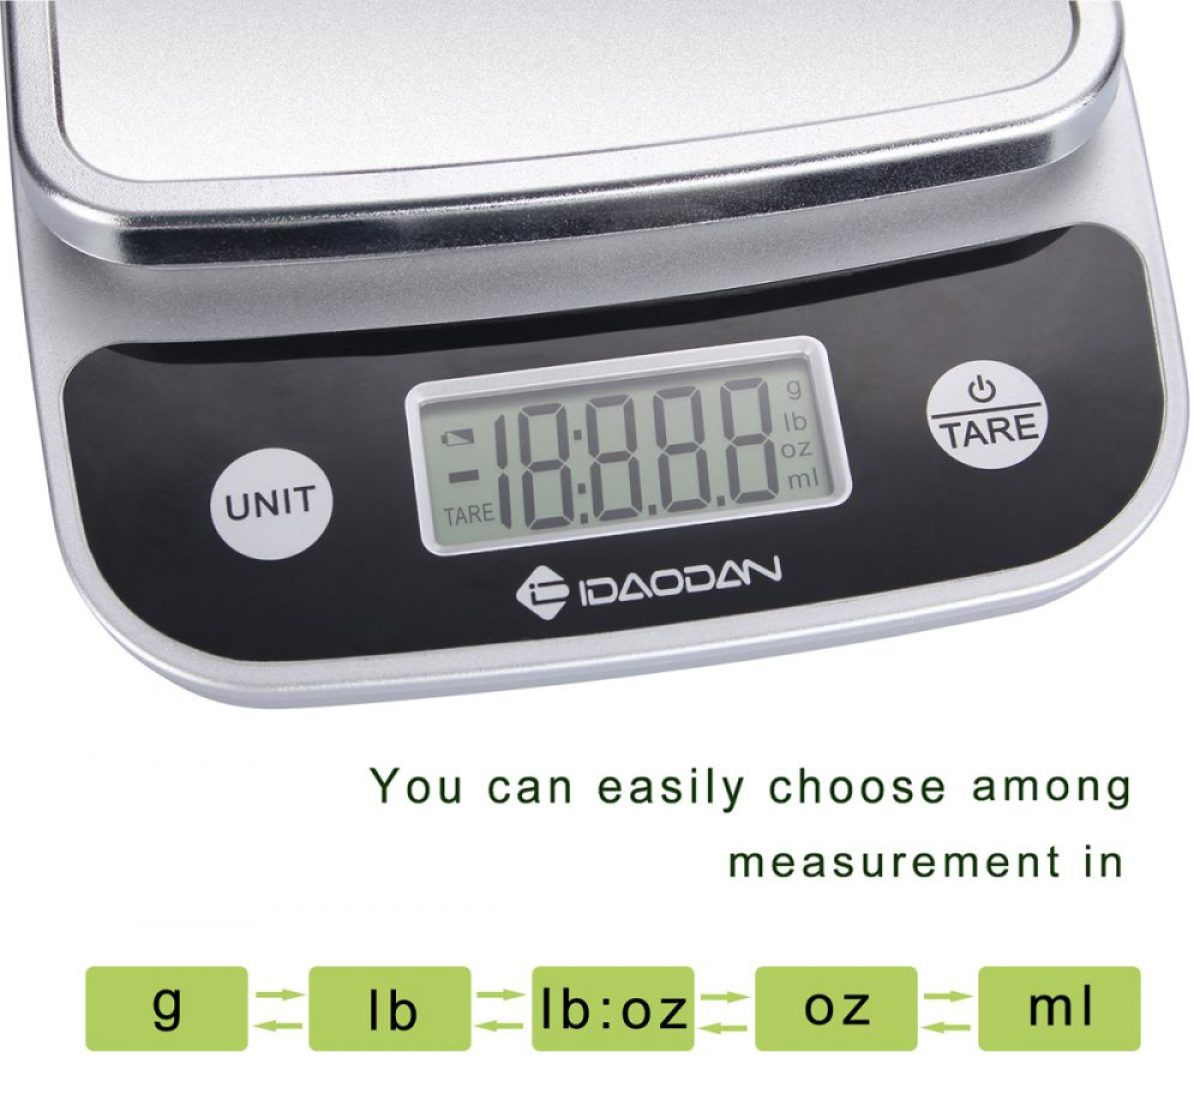 IDAODAN 0.01oz to 11lbs Digital Display Kitchen Food Scale for Precise Cooking and Baking, Multifunction Postal Scale with Large LCD Screen, Elegant Black